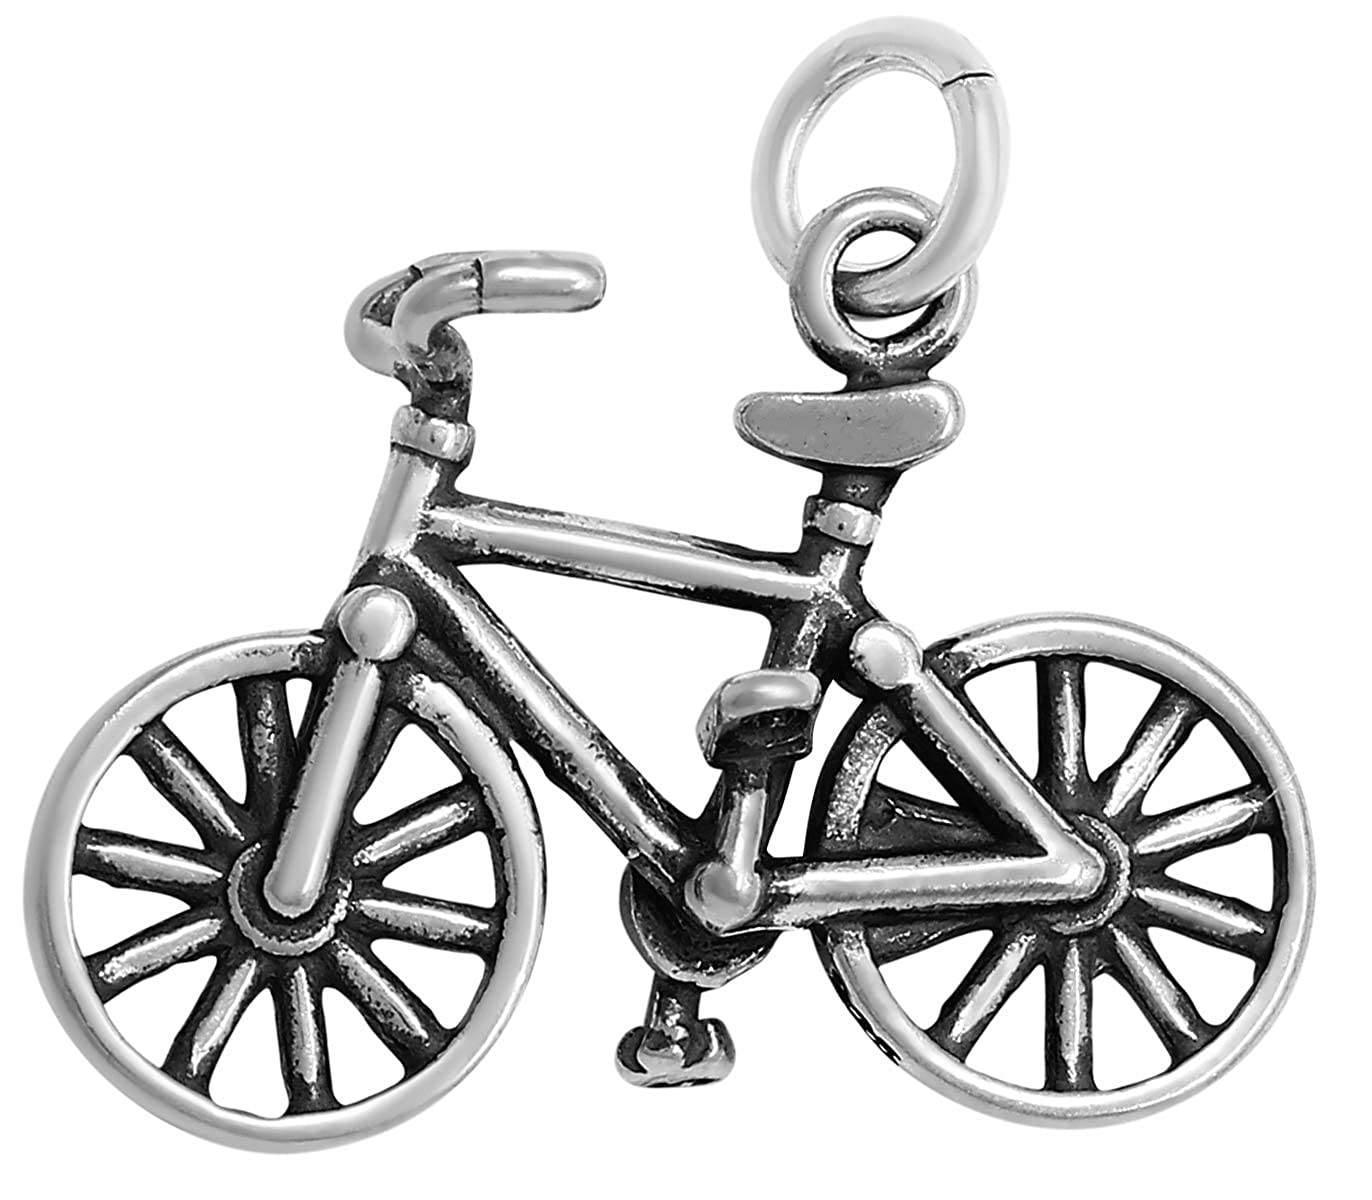 Raposa Elegance Sterling Silver 3D Bicycle Charm Necklace 16, 18 or 20 Chain